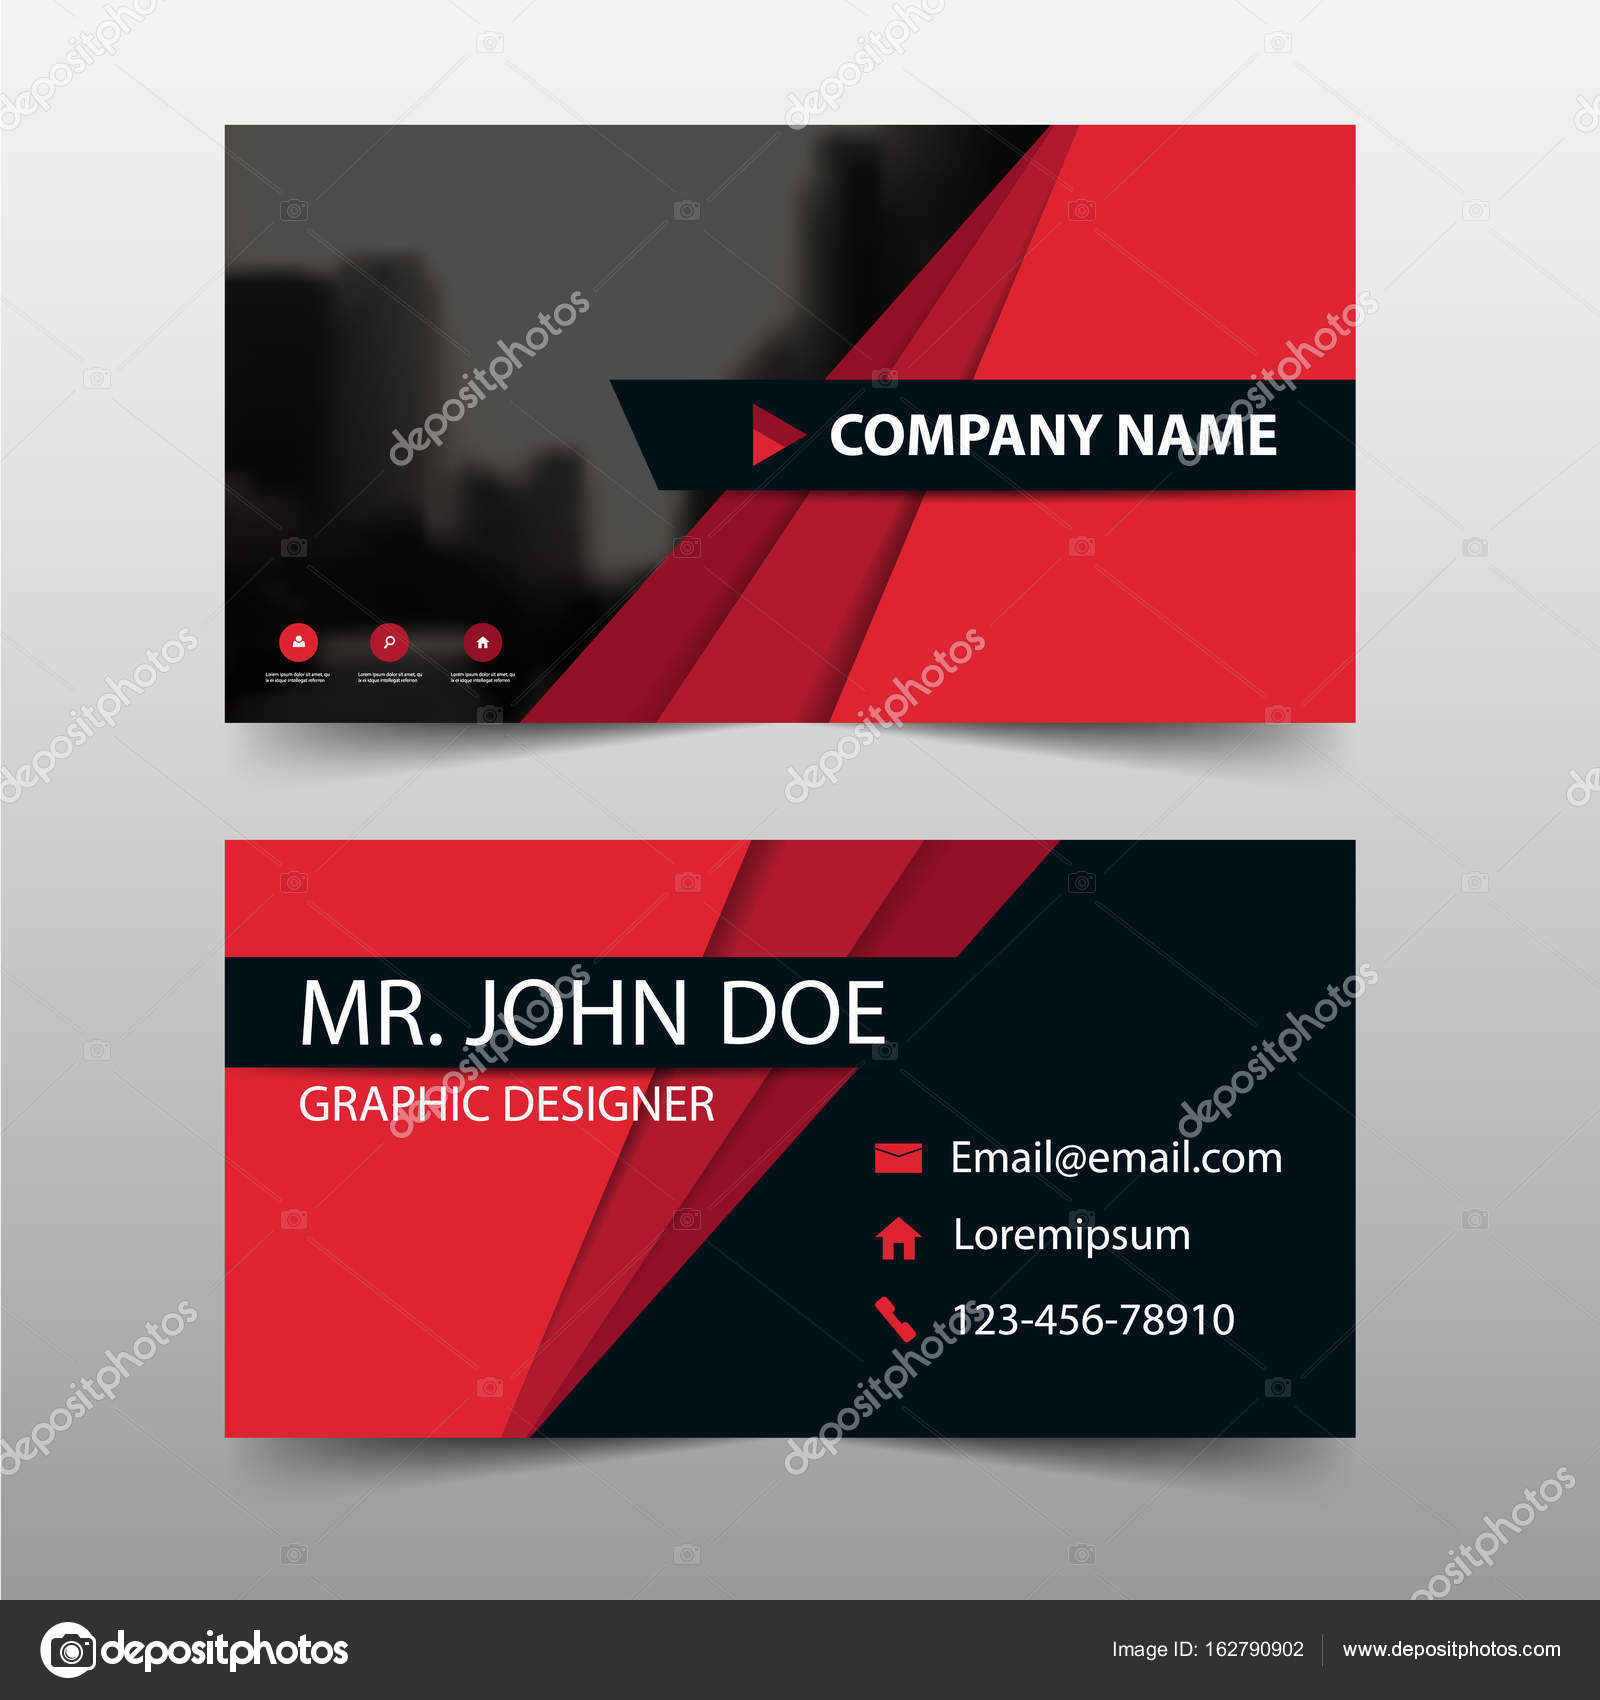 Corporate Business-Card, Karte Namensvorlage, horizontale einfaches ...